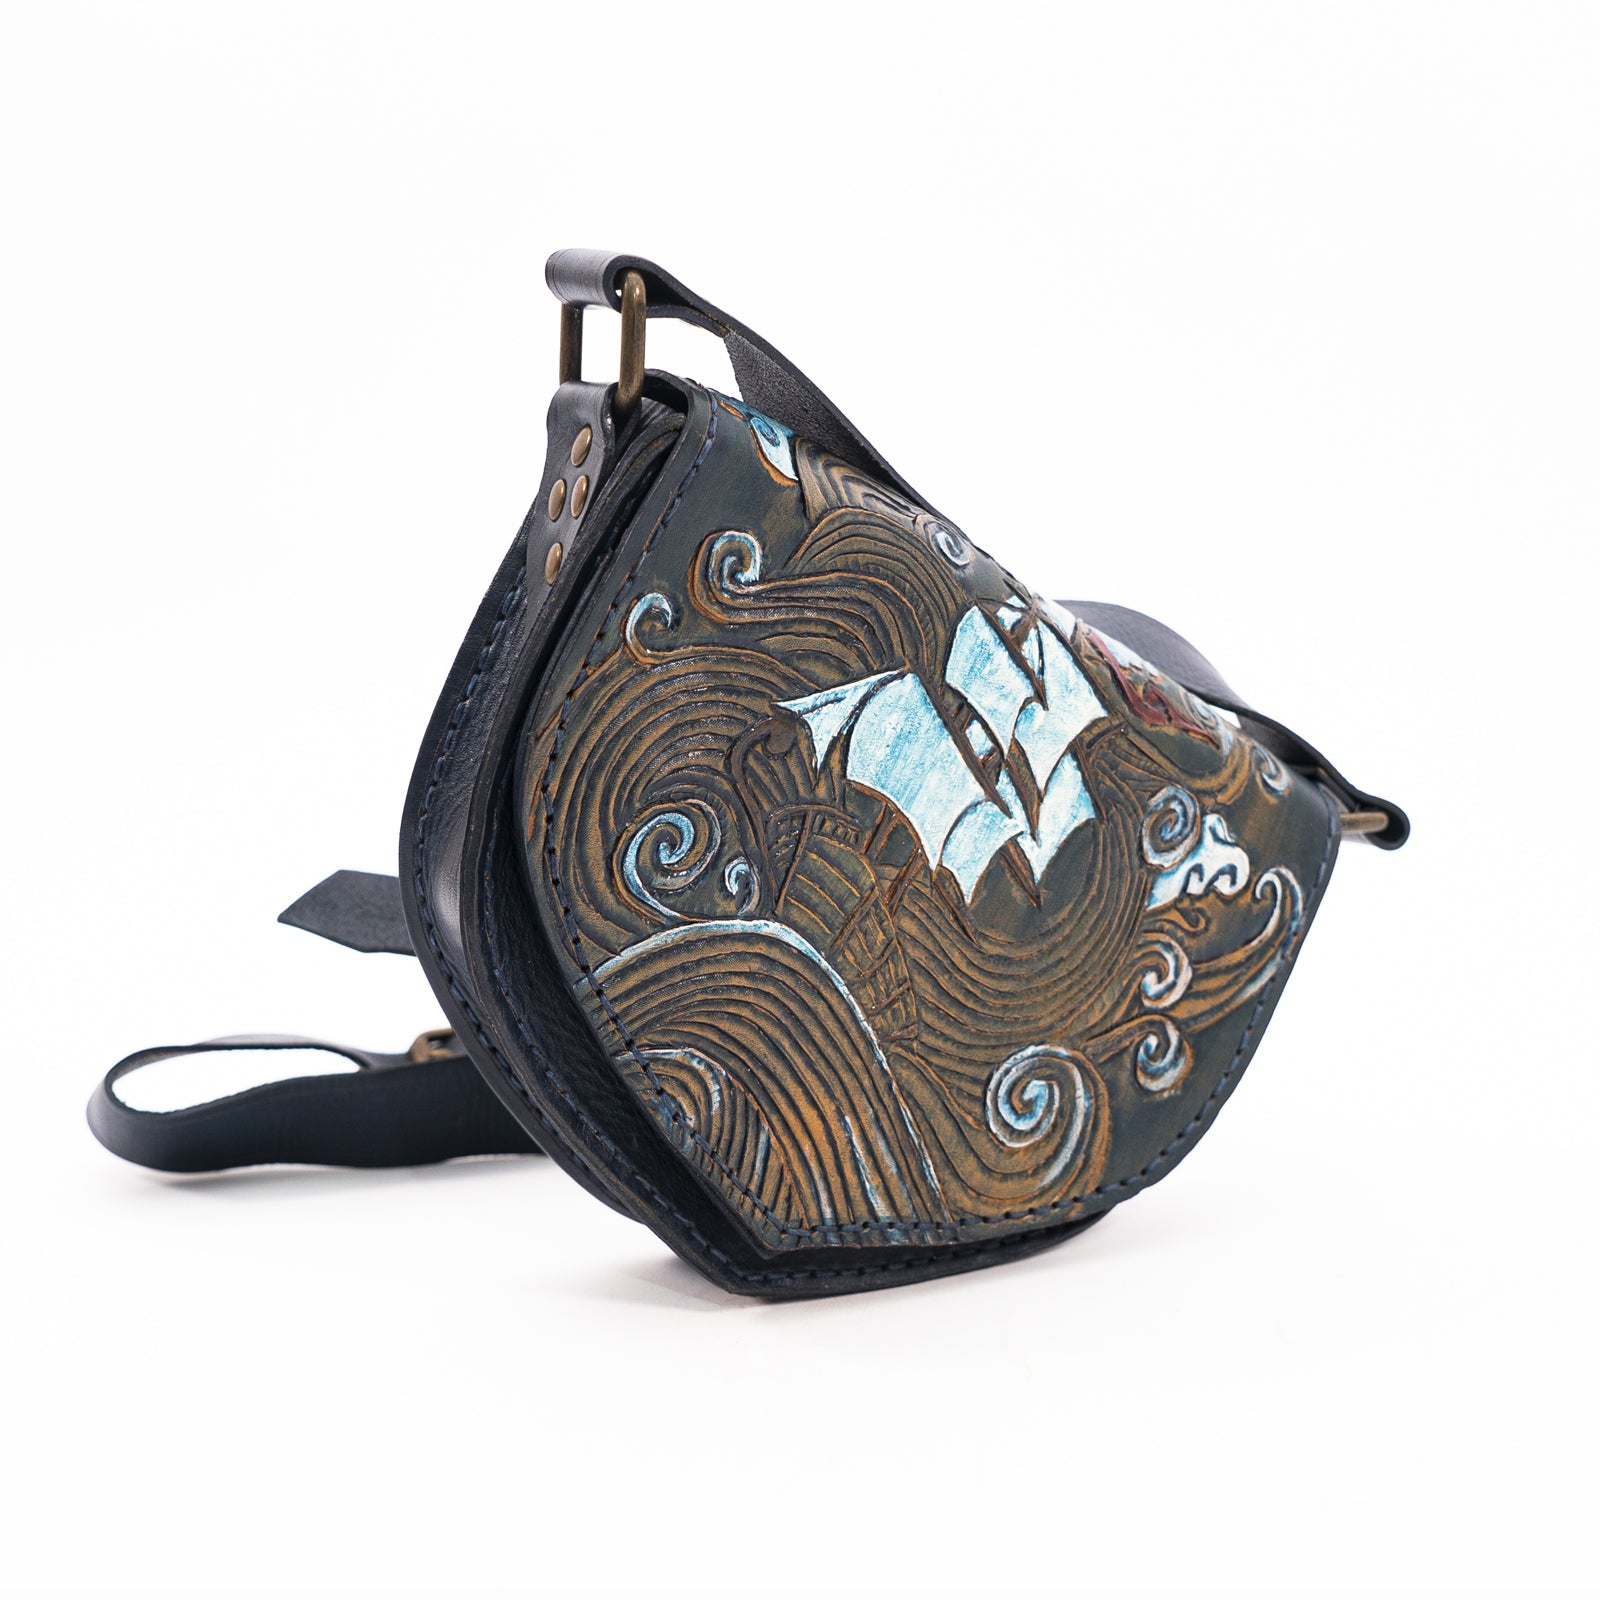 Derifix Axel Handmade Woman Leather Bag